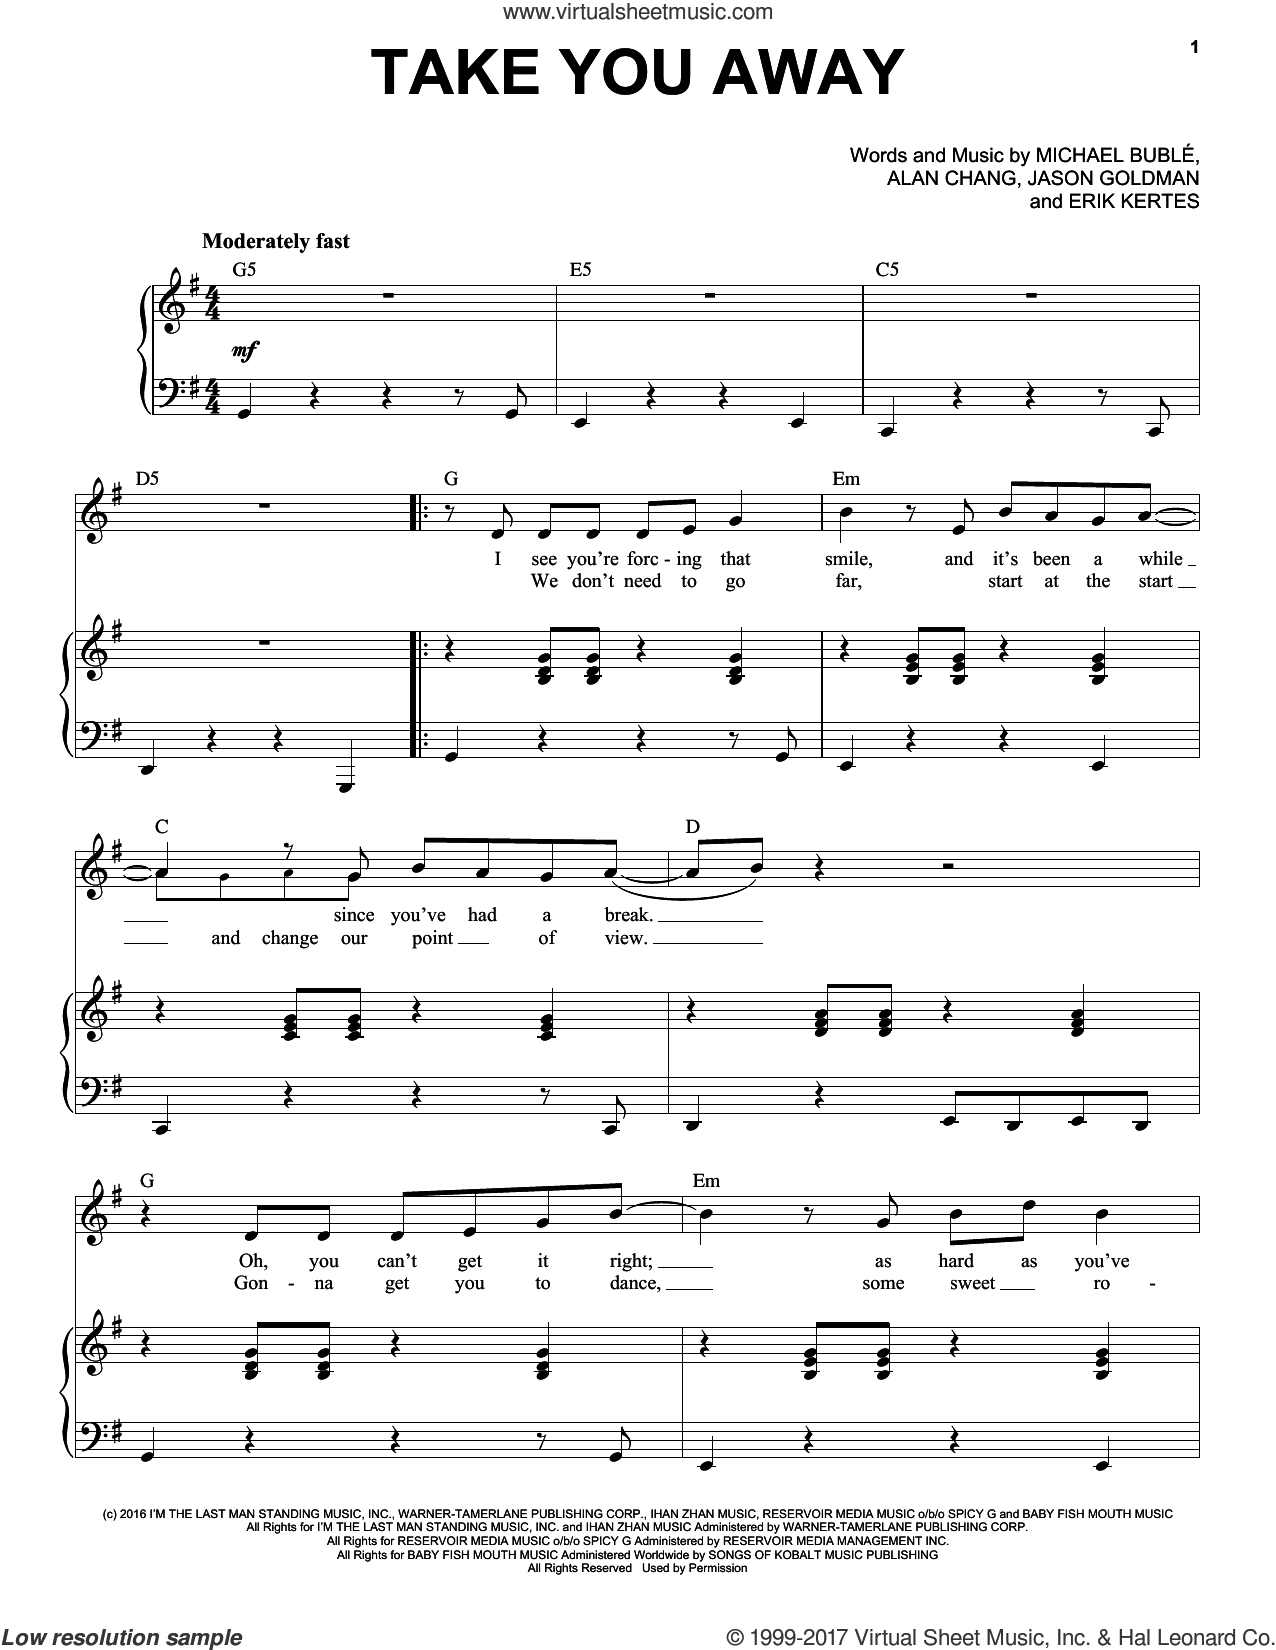 Take You Away sheet music for voice and piano by Michael Buble, Alan Chang, Erik Kertes and Jason Goldman, intermediate skill level